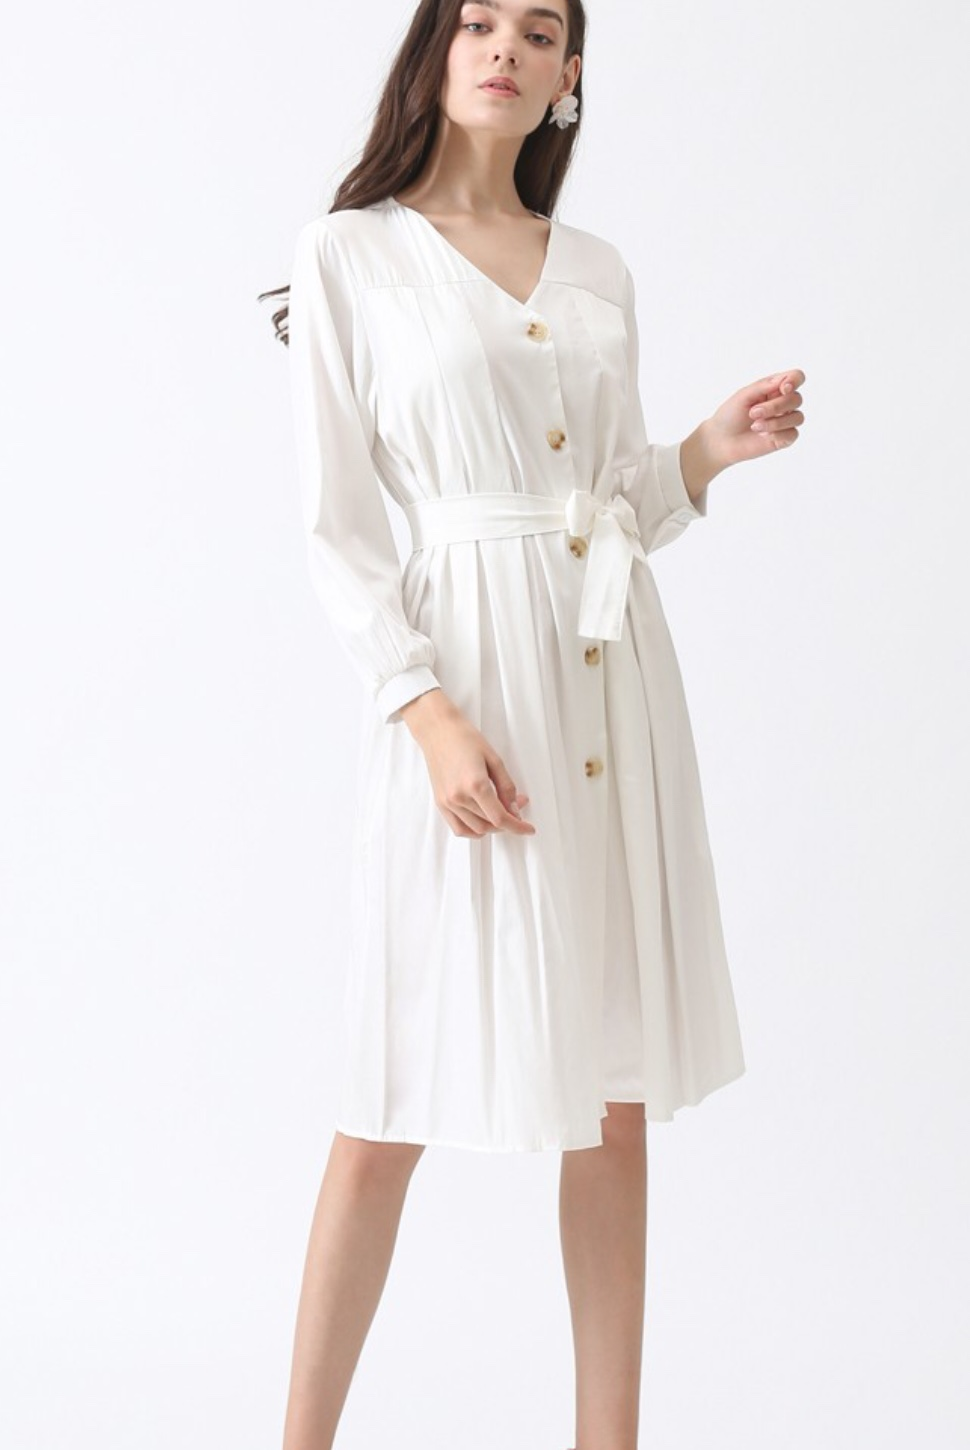 A classic cotton dress is perfect for celebrating the end of summer!